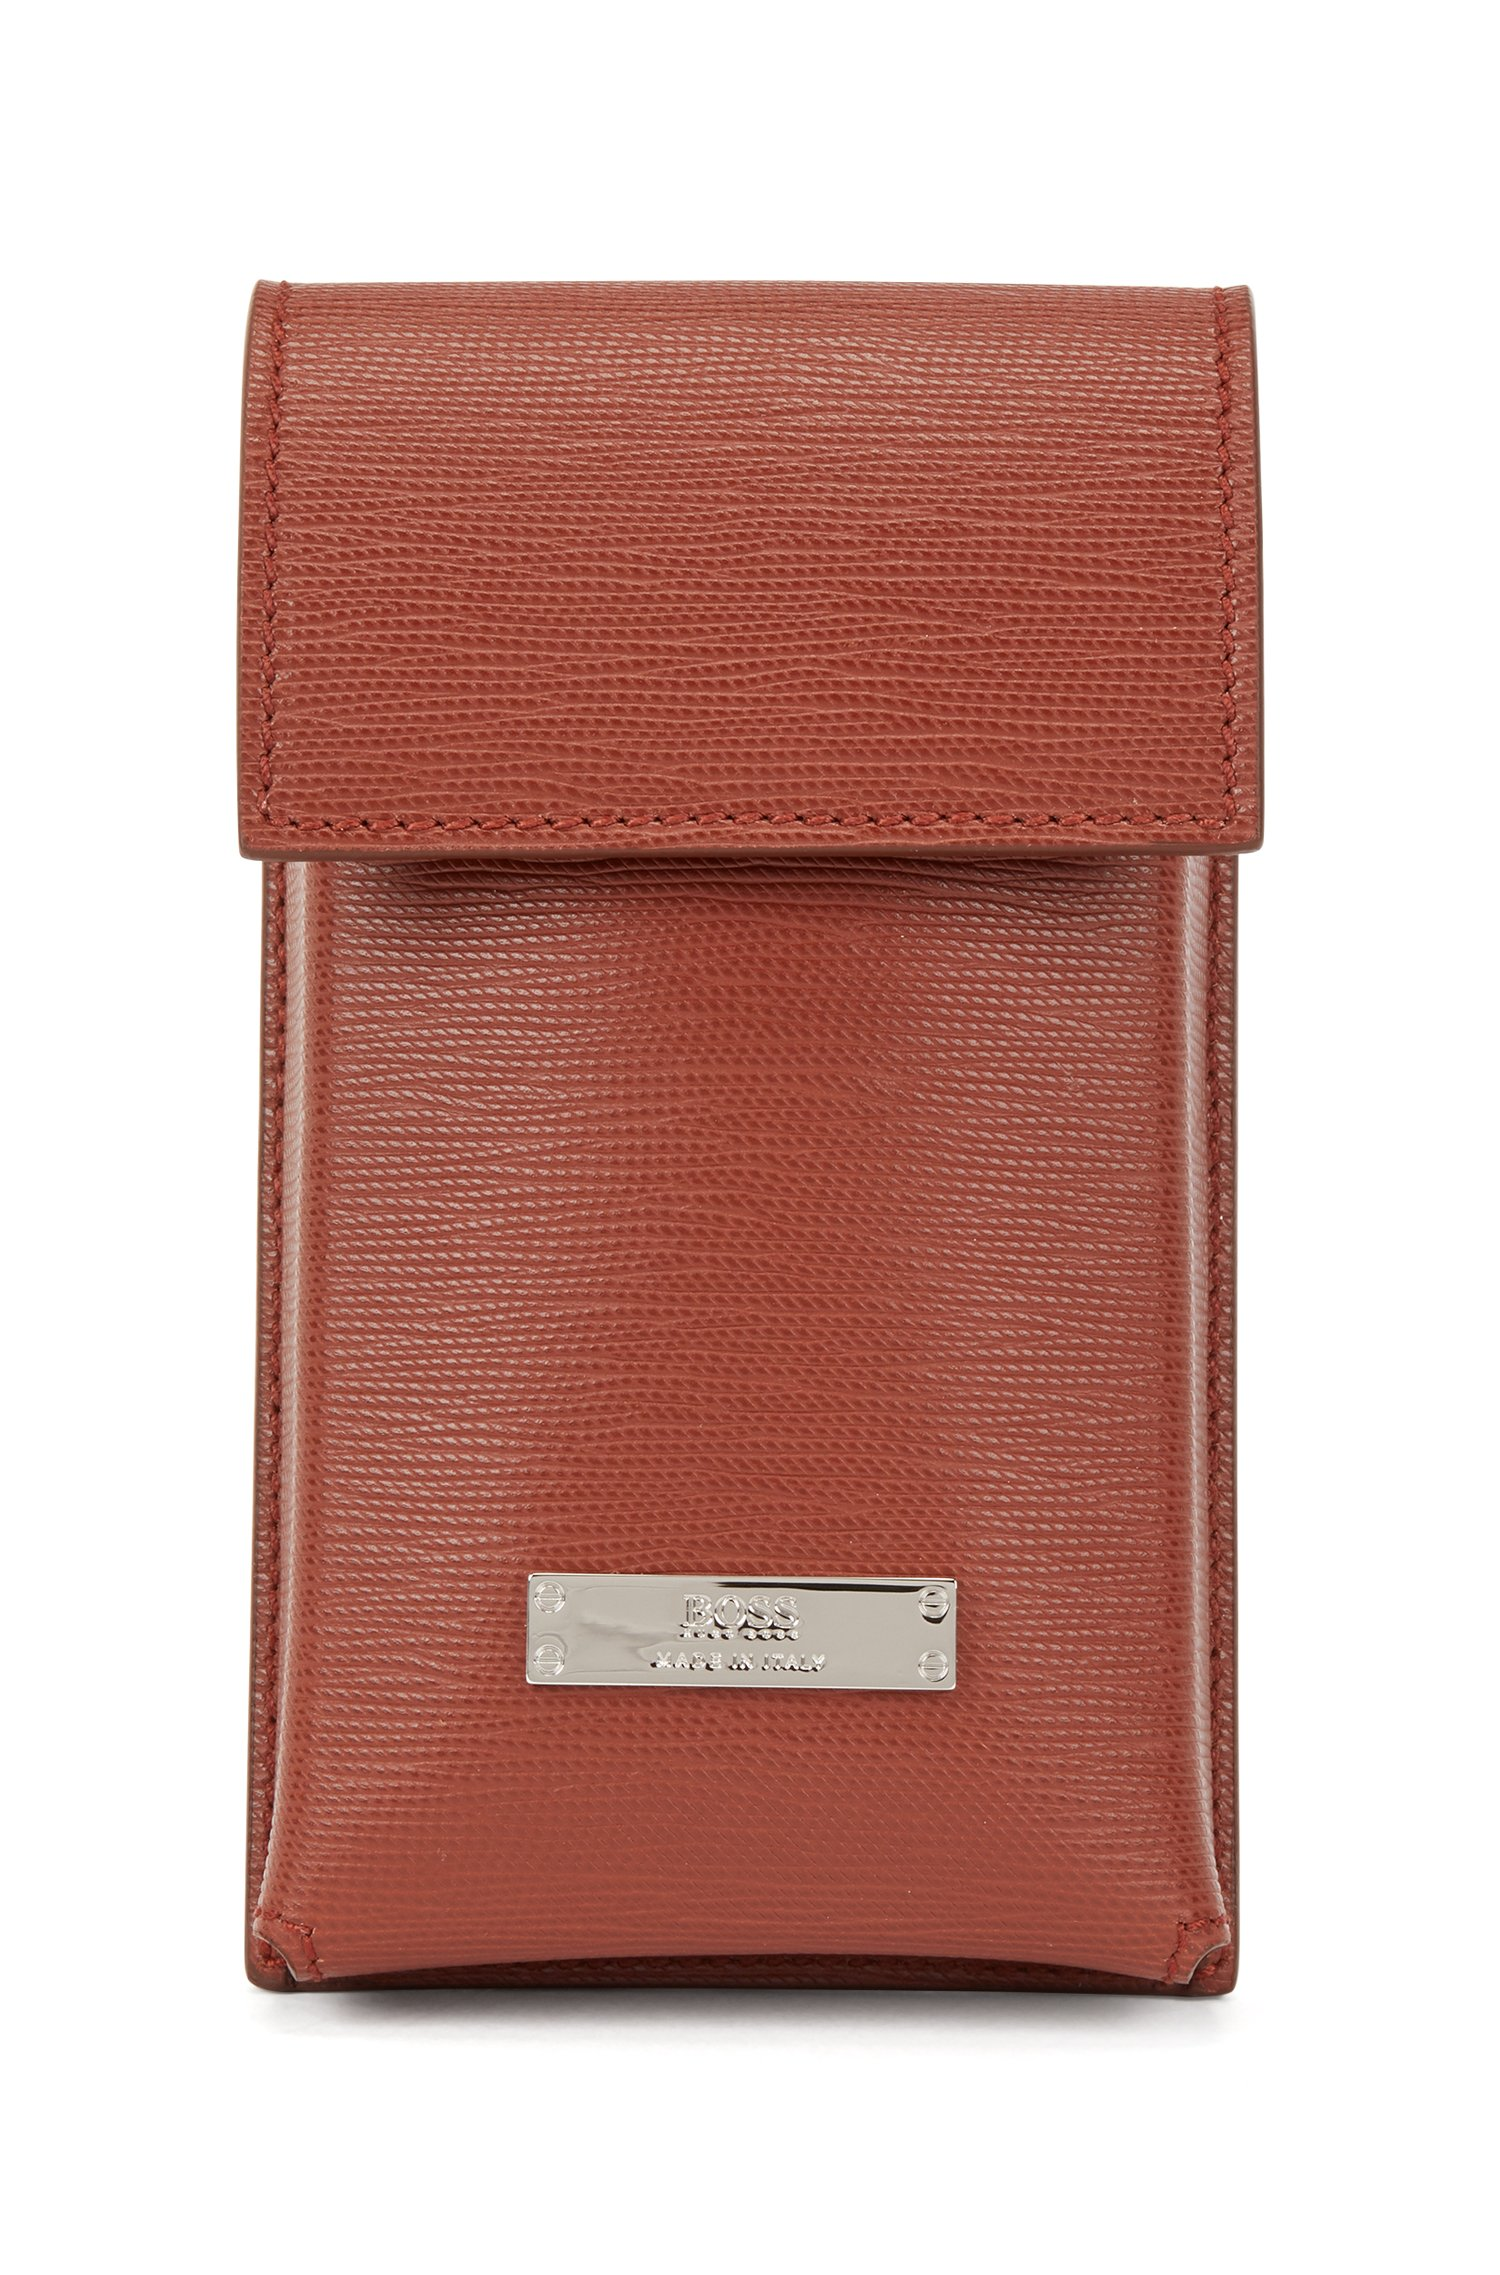 Italian-leather neck pouch with detachable strap, Brown